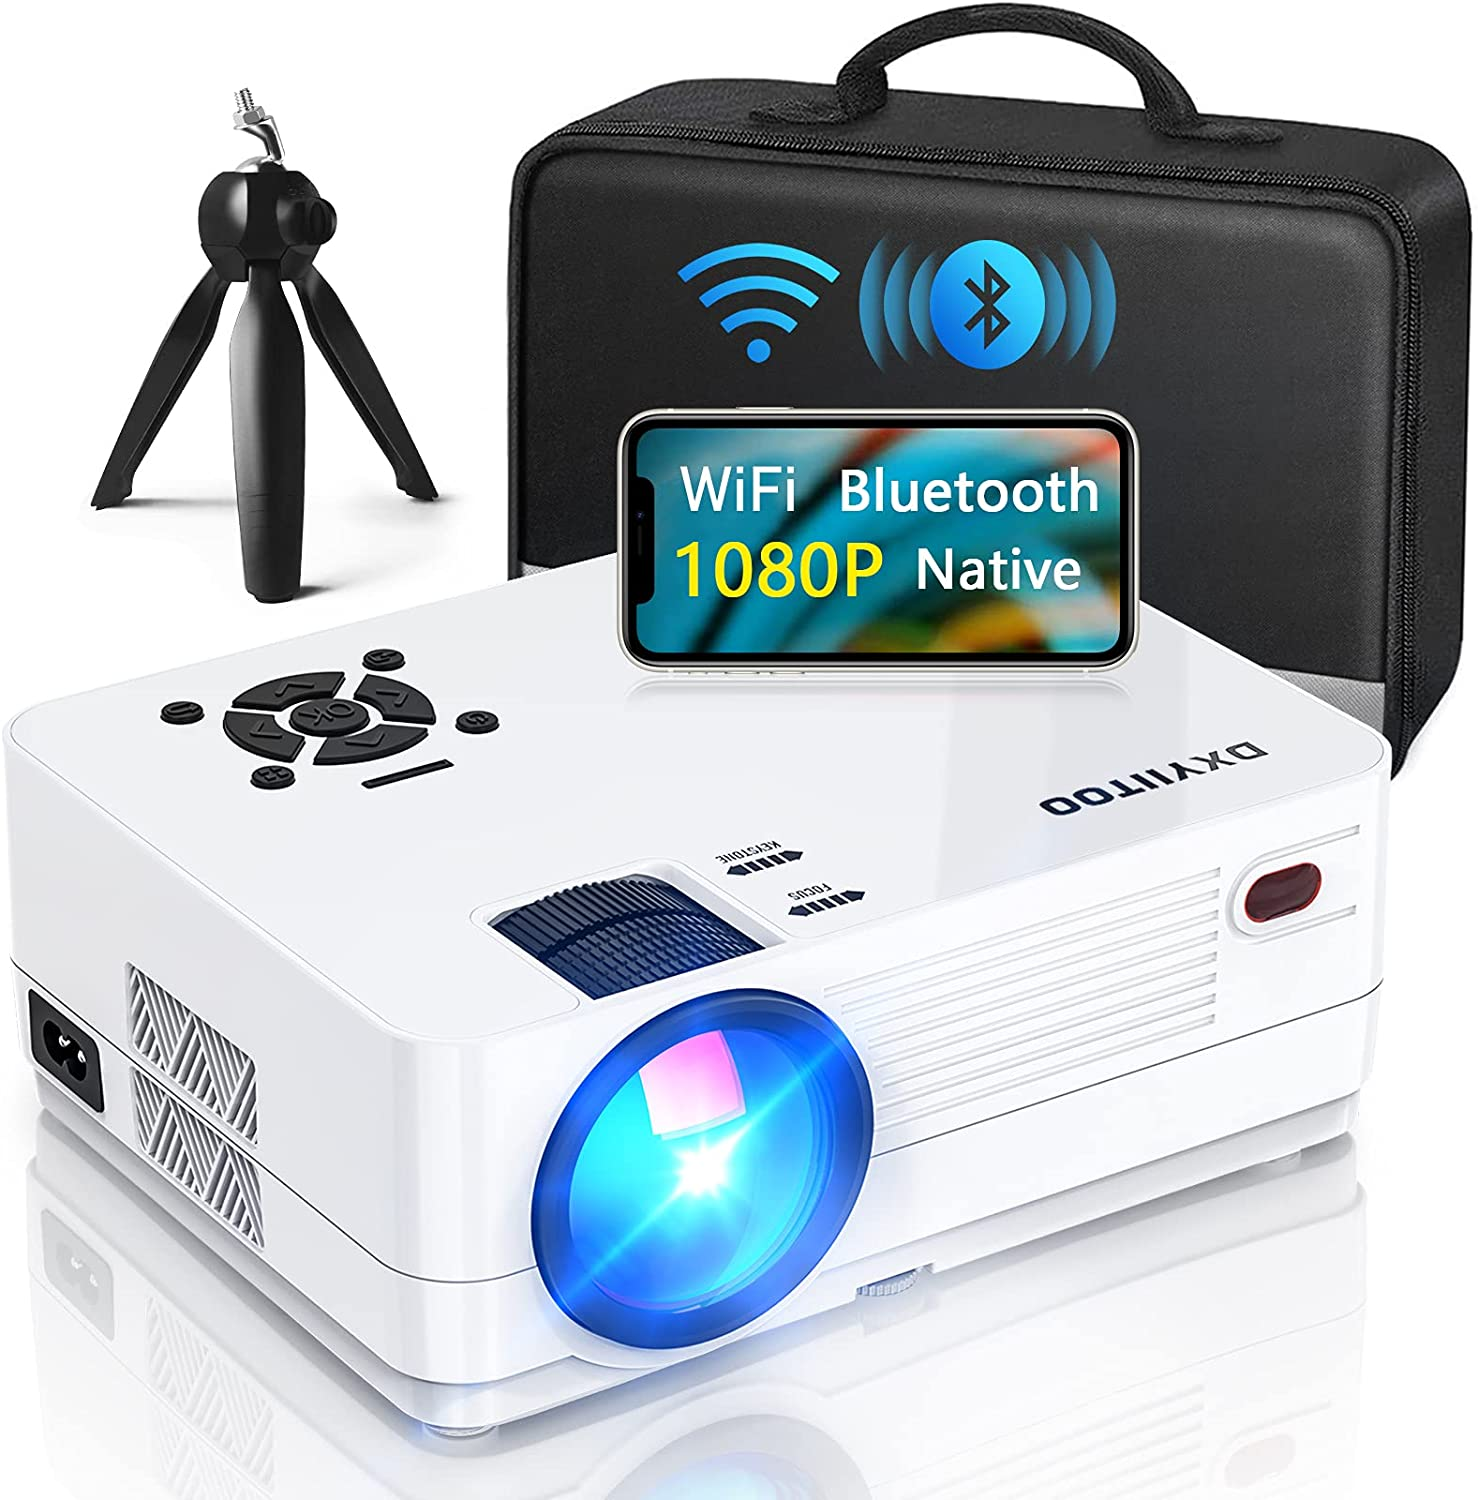 Native 1080P Projector with WiFi and Two-Way Bluetooth, Full HD Movie Projector for Outdoor Movies, 300